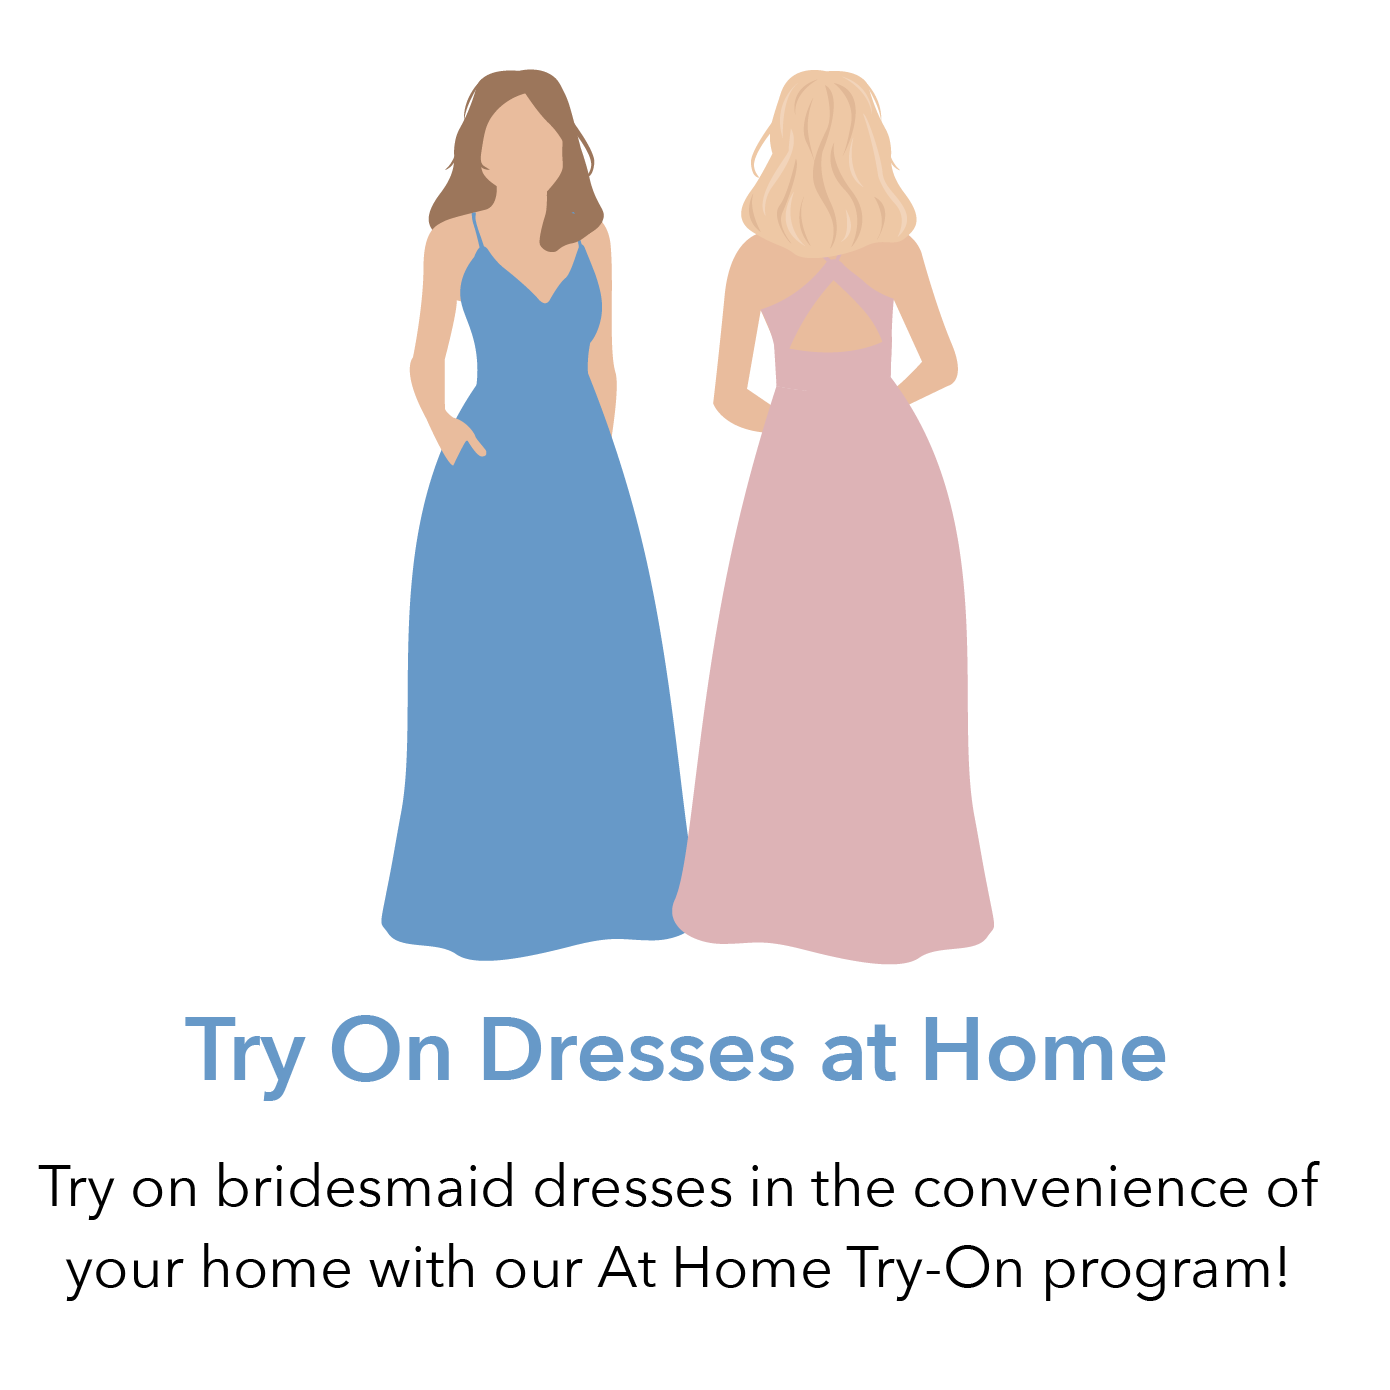 Try On Dresses At Home